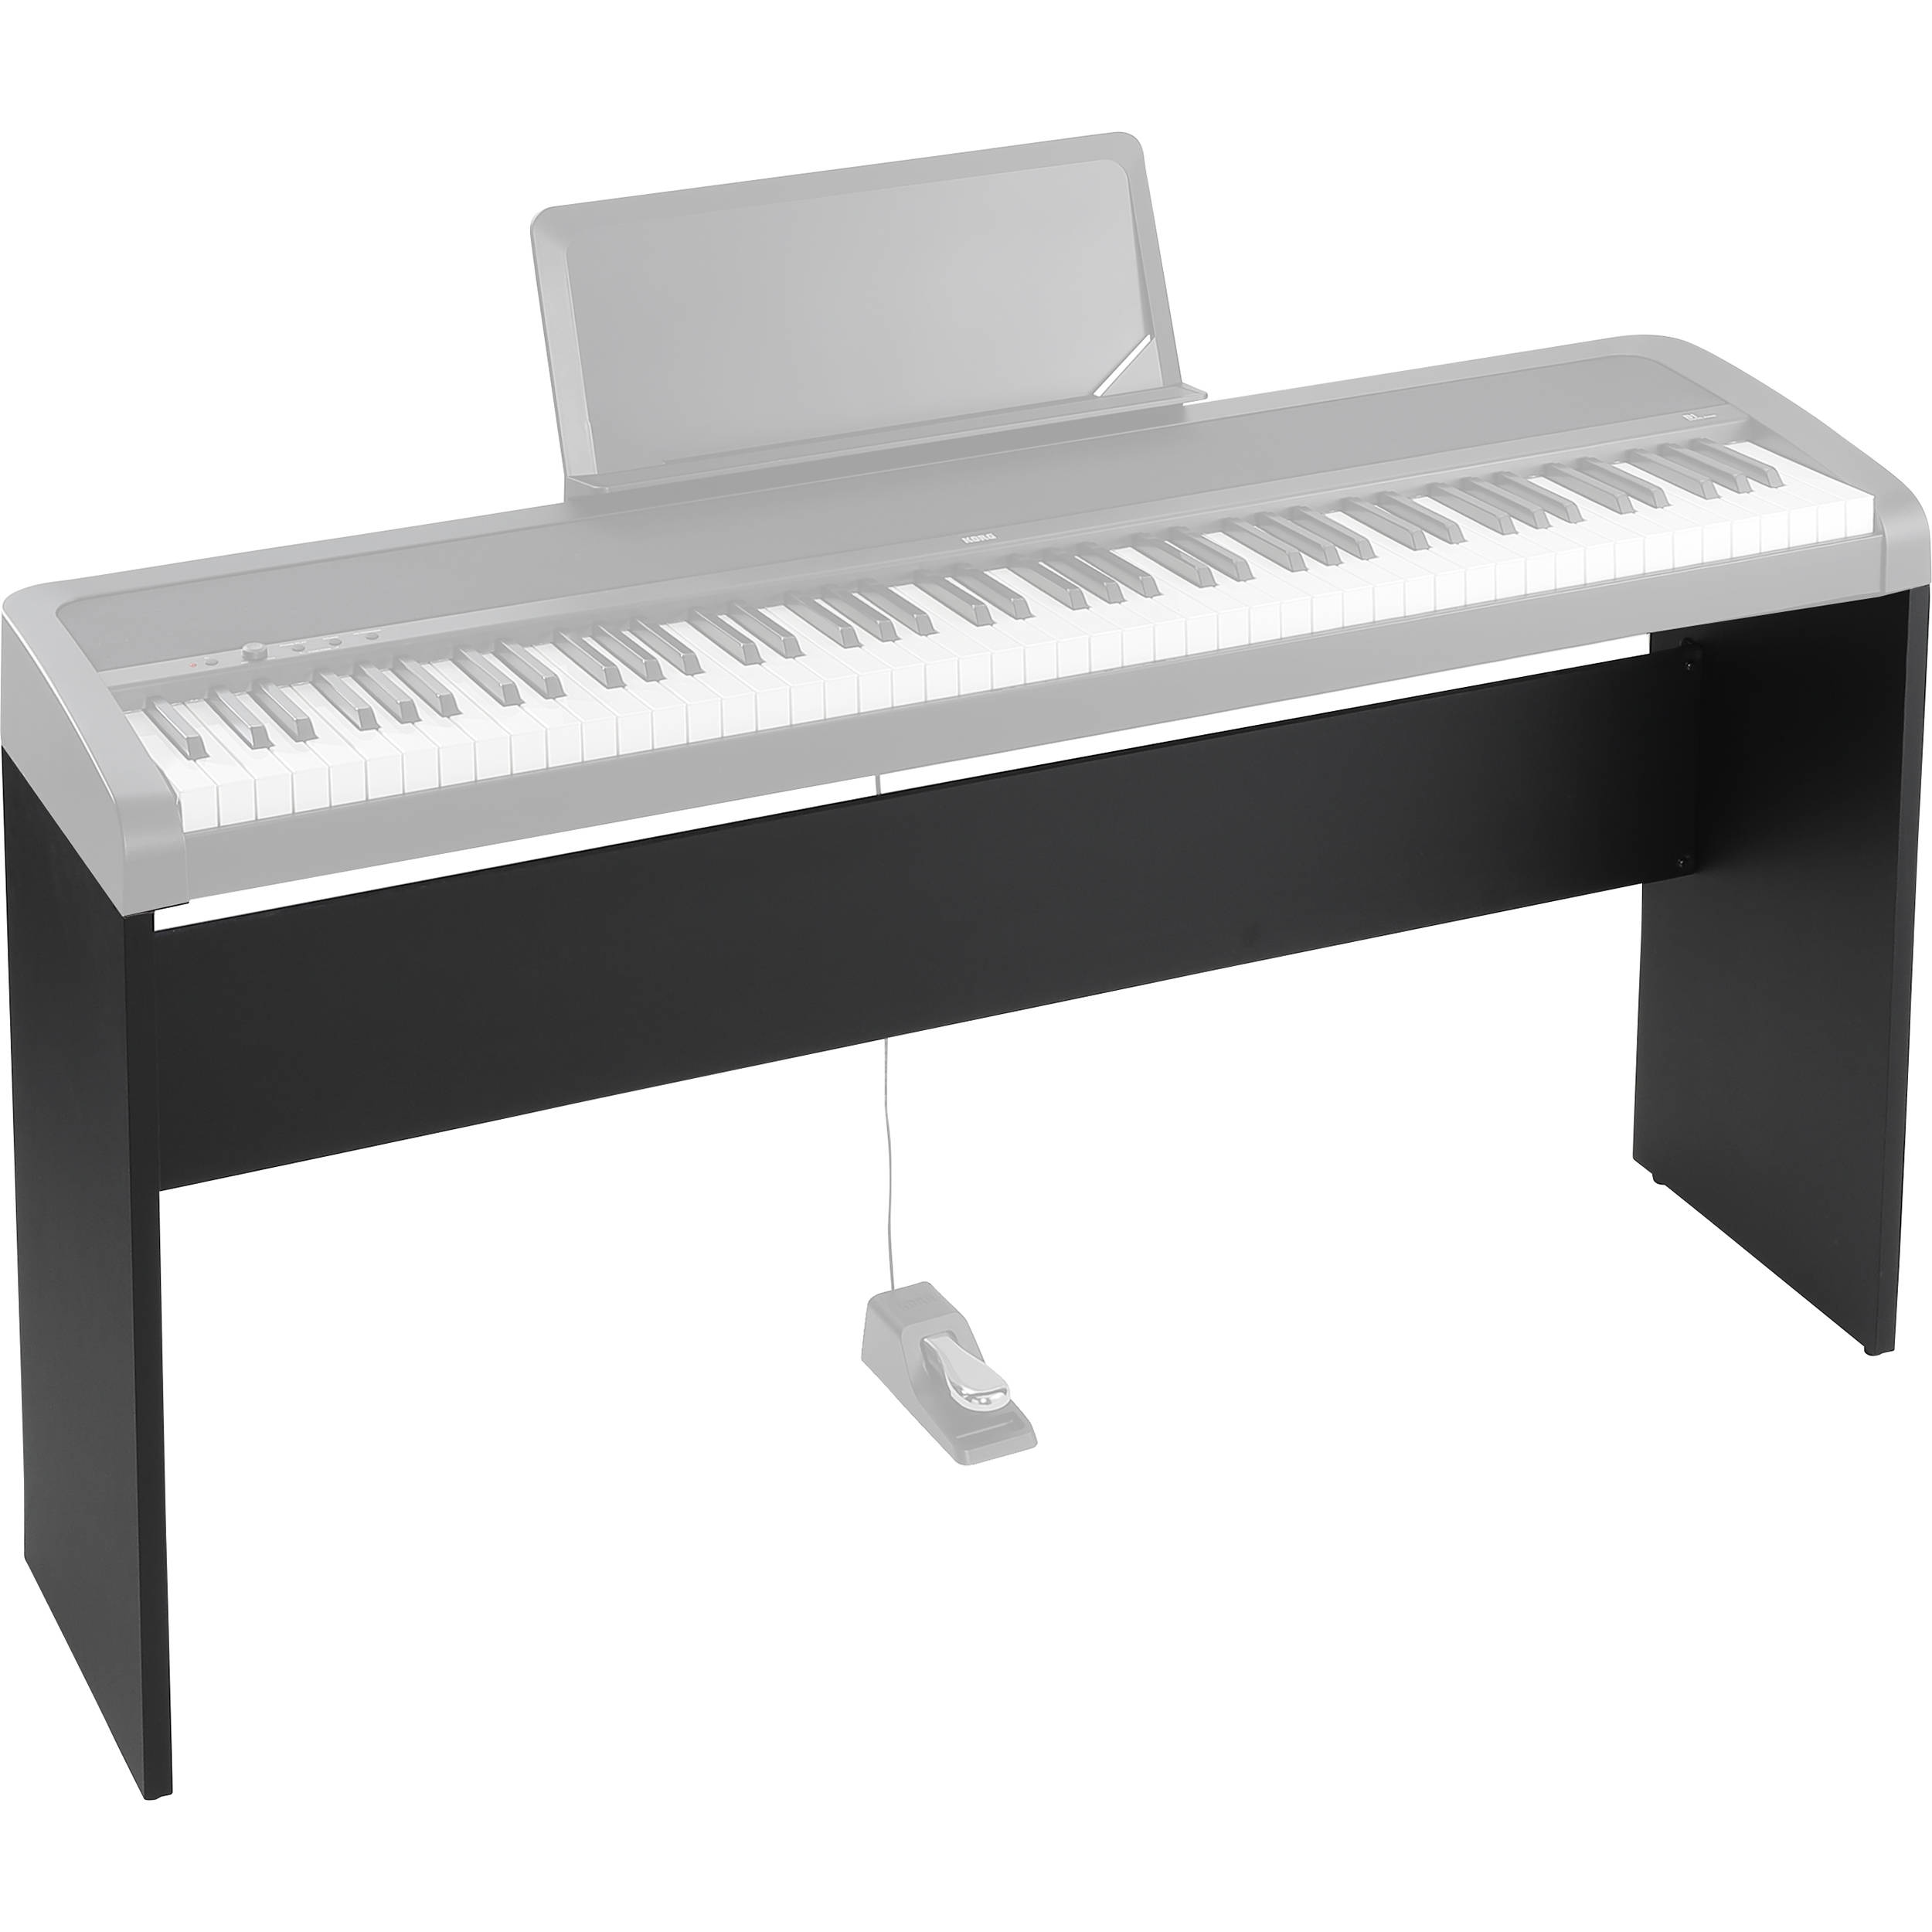 korg stb1 piano stand for b1 digital piano black stb1bk b h. Black Bedroom Furniture Sets. Home Design Ideas